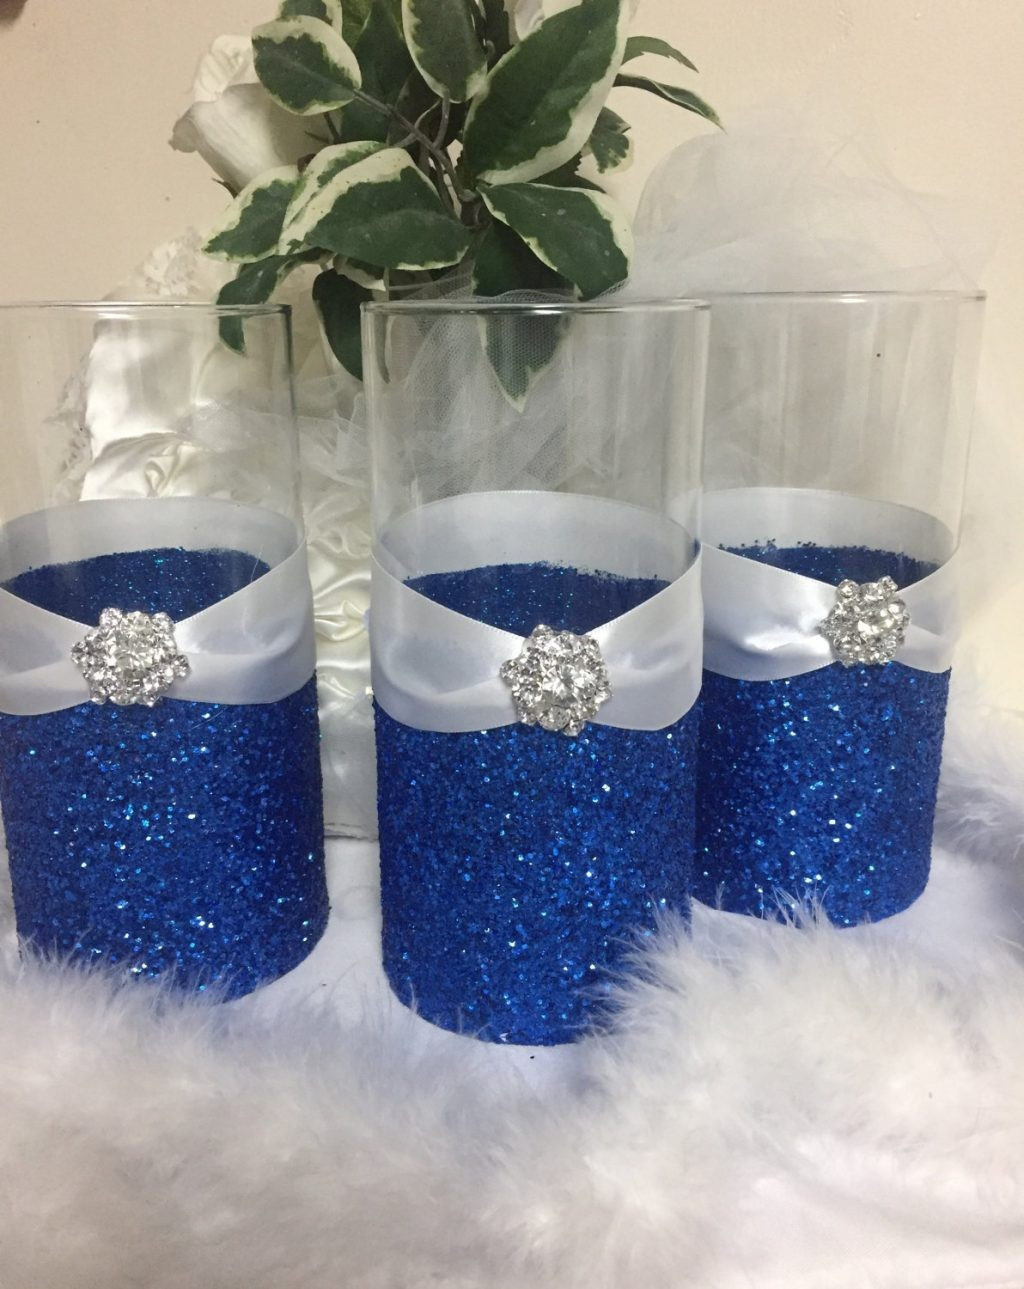 simple bud vase centerpieces of wedding decorations centerpieces beautiful tallh vases glitter vase inside wedding decorations centerpieces beautiful tallh vases glitter vase centerpiece diy vasei 0d ball for design